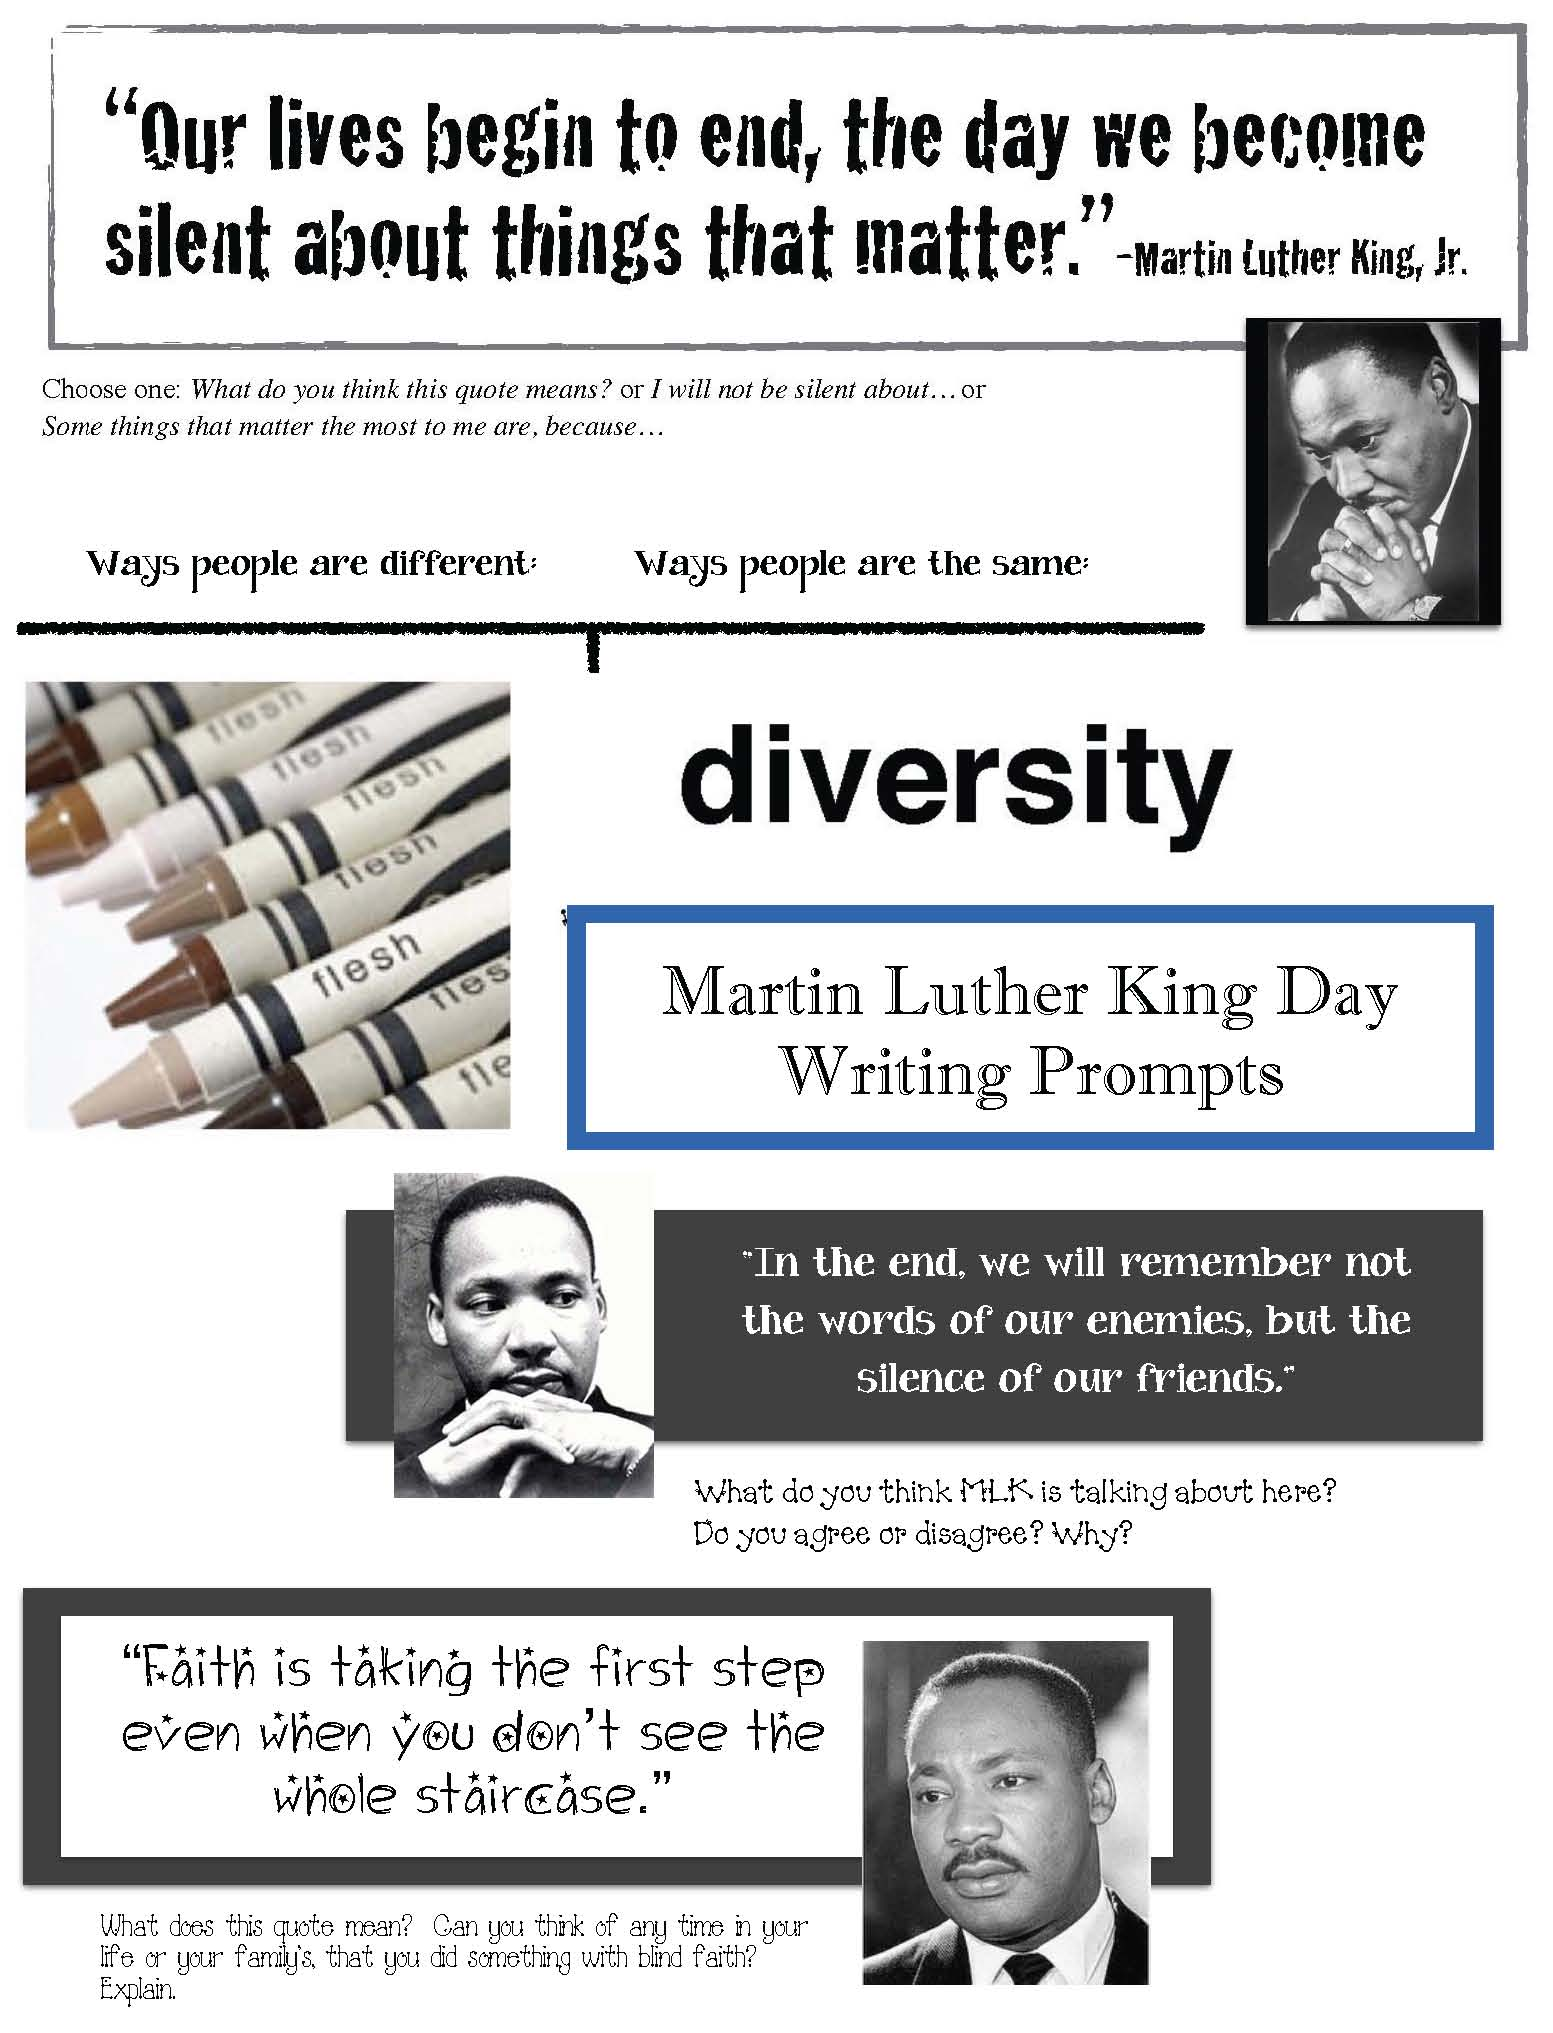 writing prompts for MLK day, writing prompts for martin luther king day, writing activities for martin luther king day, MLK day activities for kids, MLK alphabet cards, martin luther king alphabet cards, MLK games, games to play on MLK day, martin luther king quotations